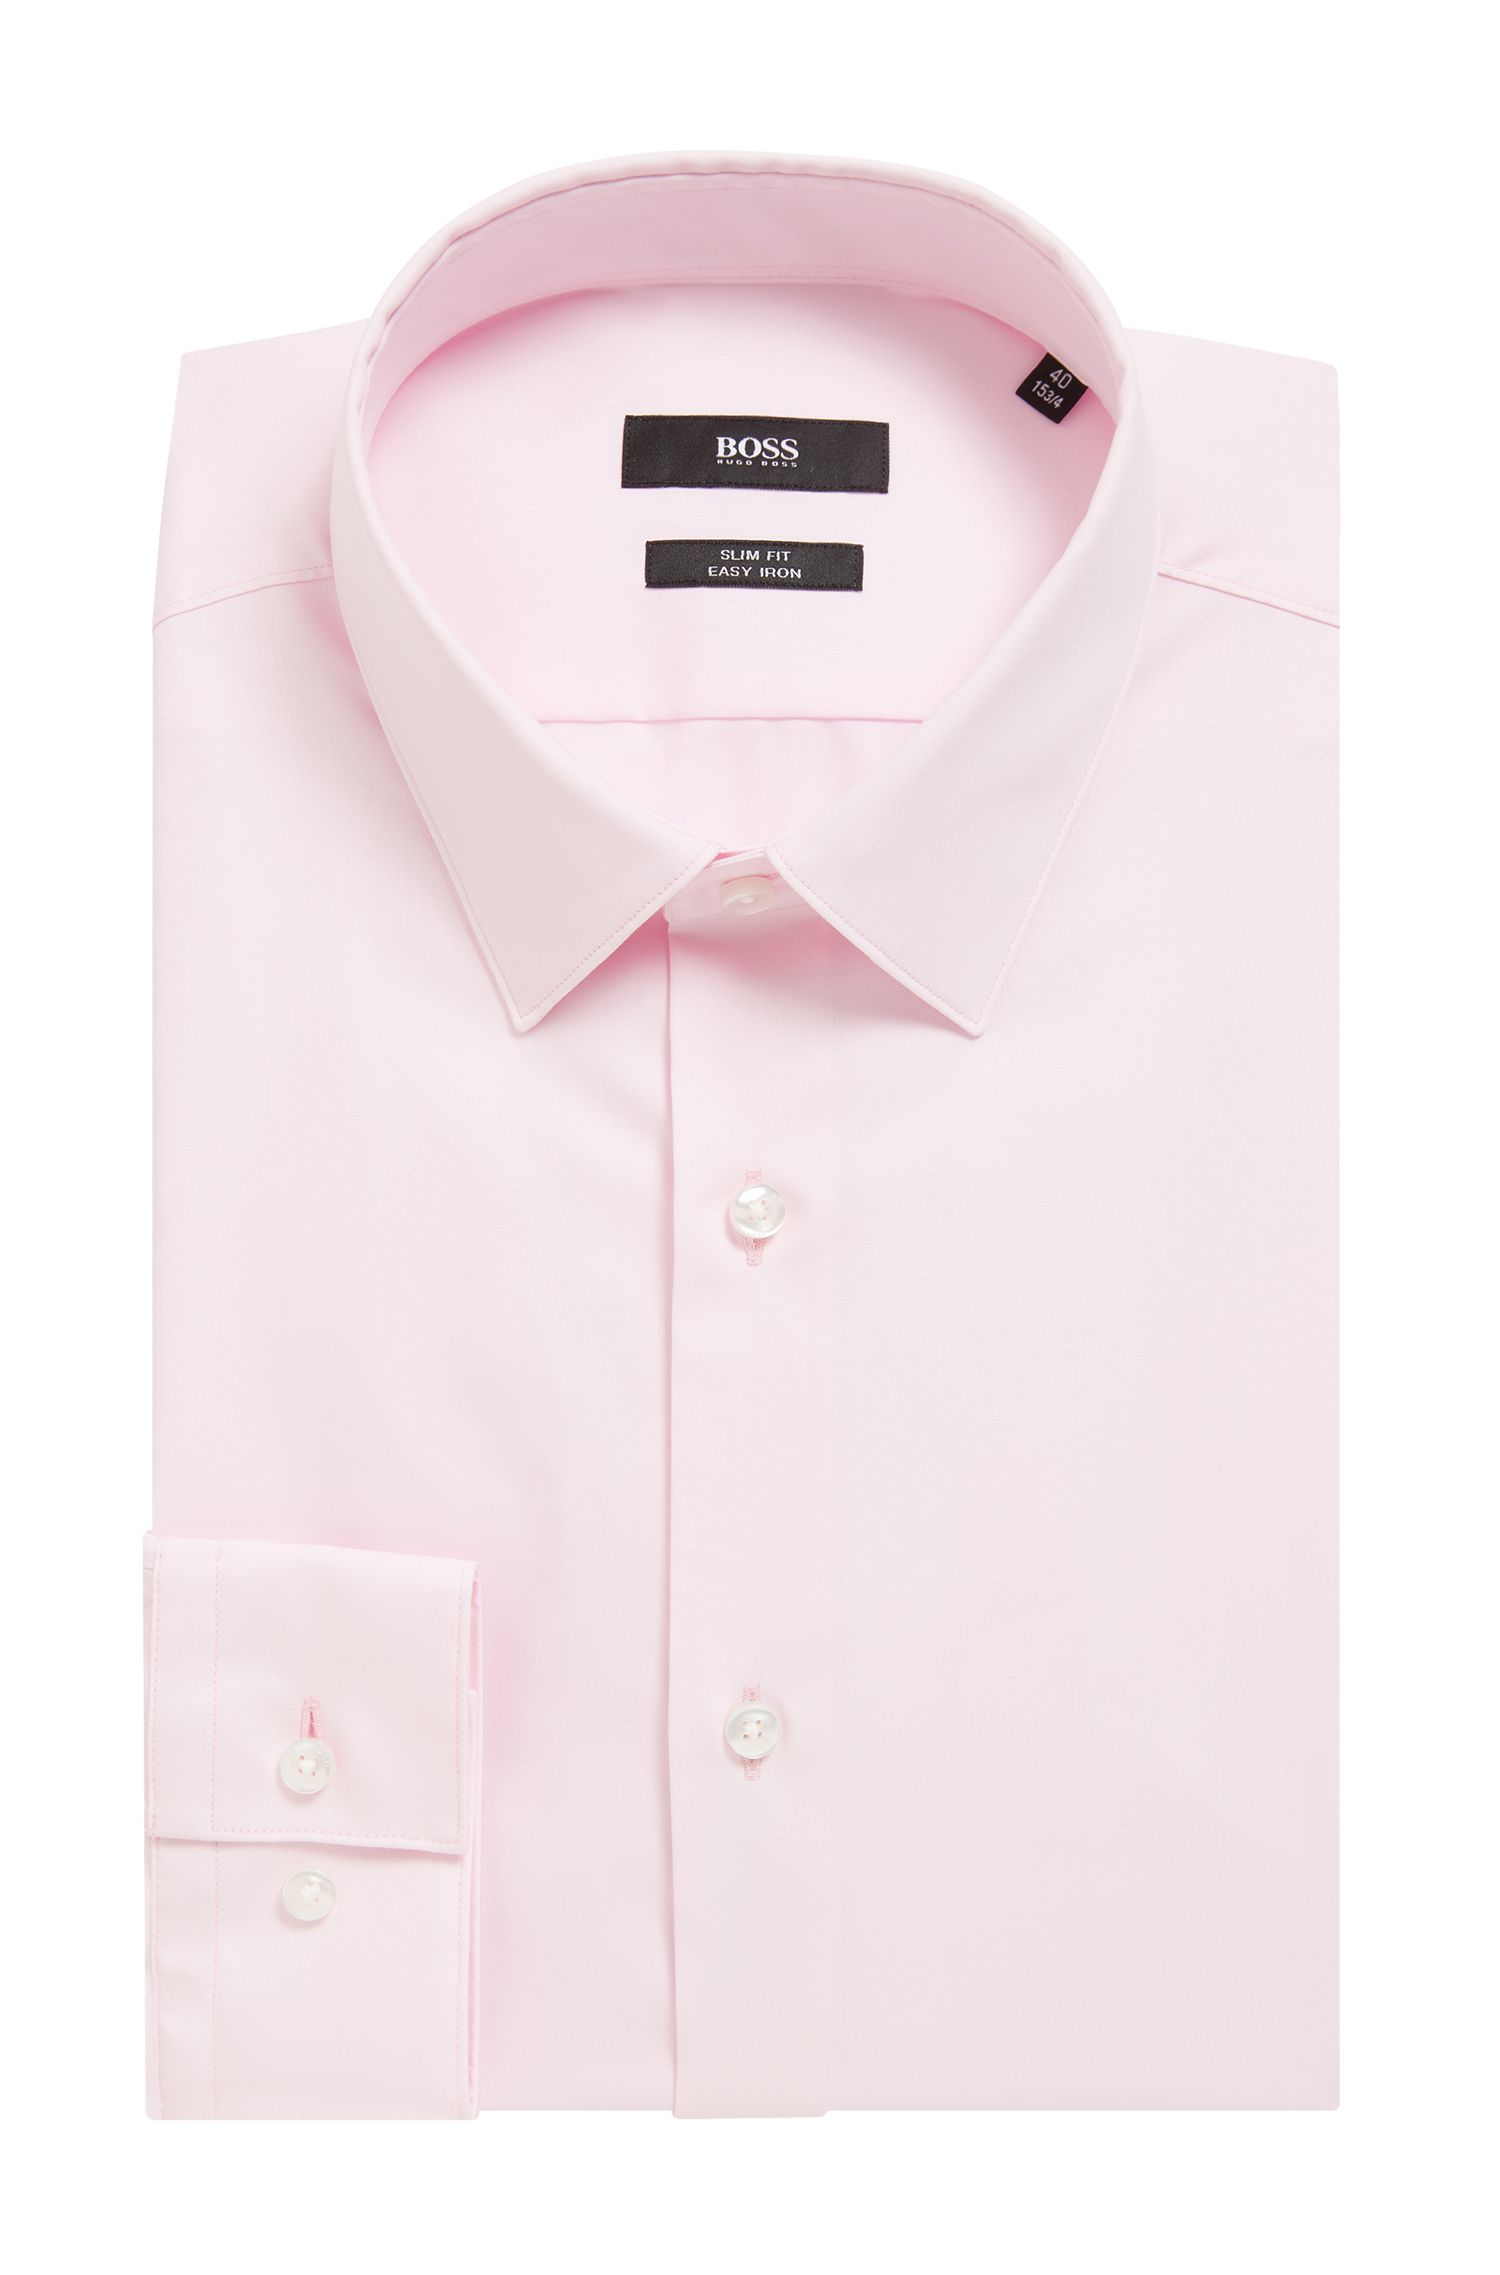 Austrian-made slim-fit shirt in easy-iron cotton, light pink